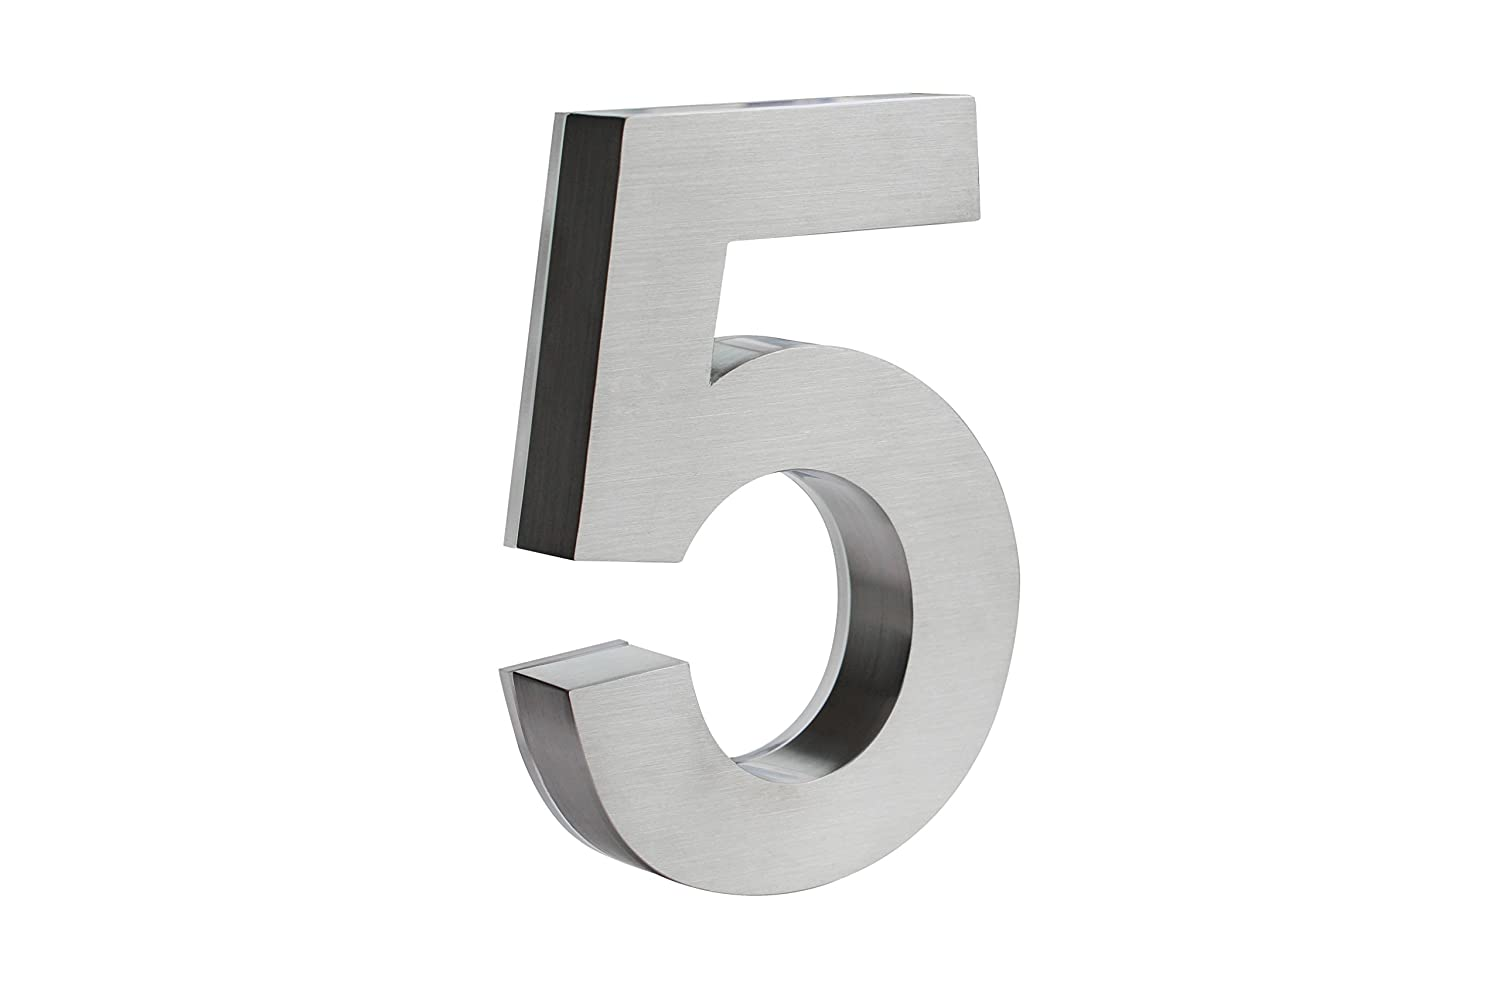 12 Inches LED House Numbers by JELSCO | Modern Big Sign Address Numbers White (5)